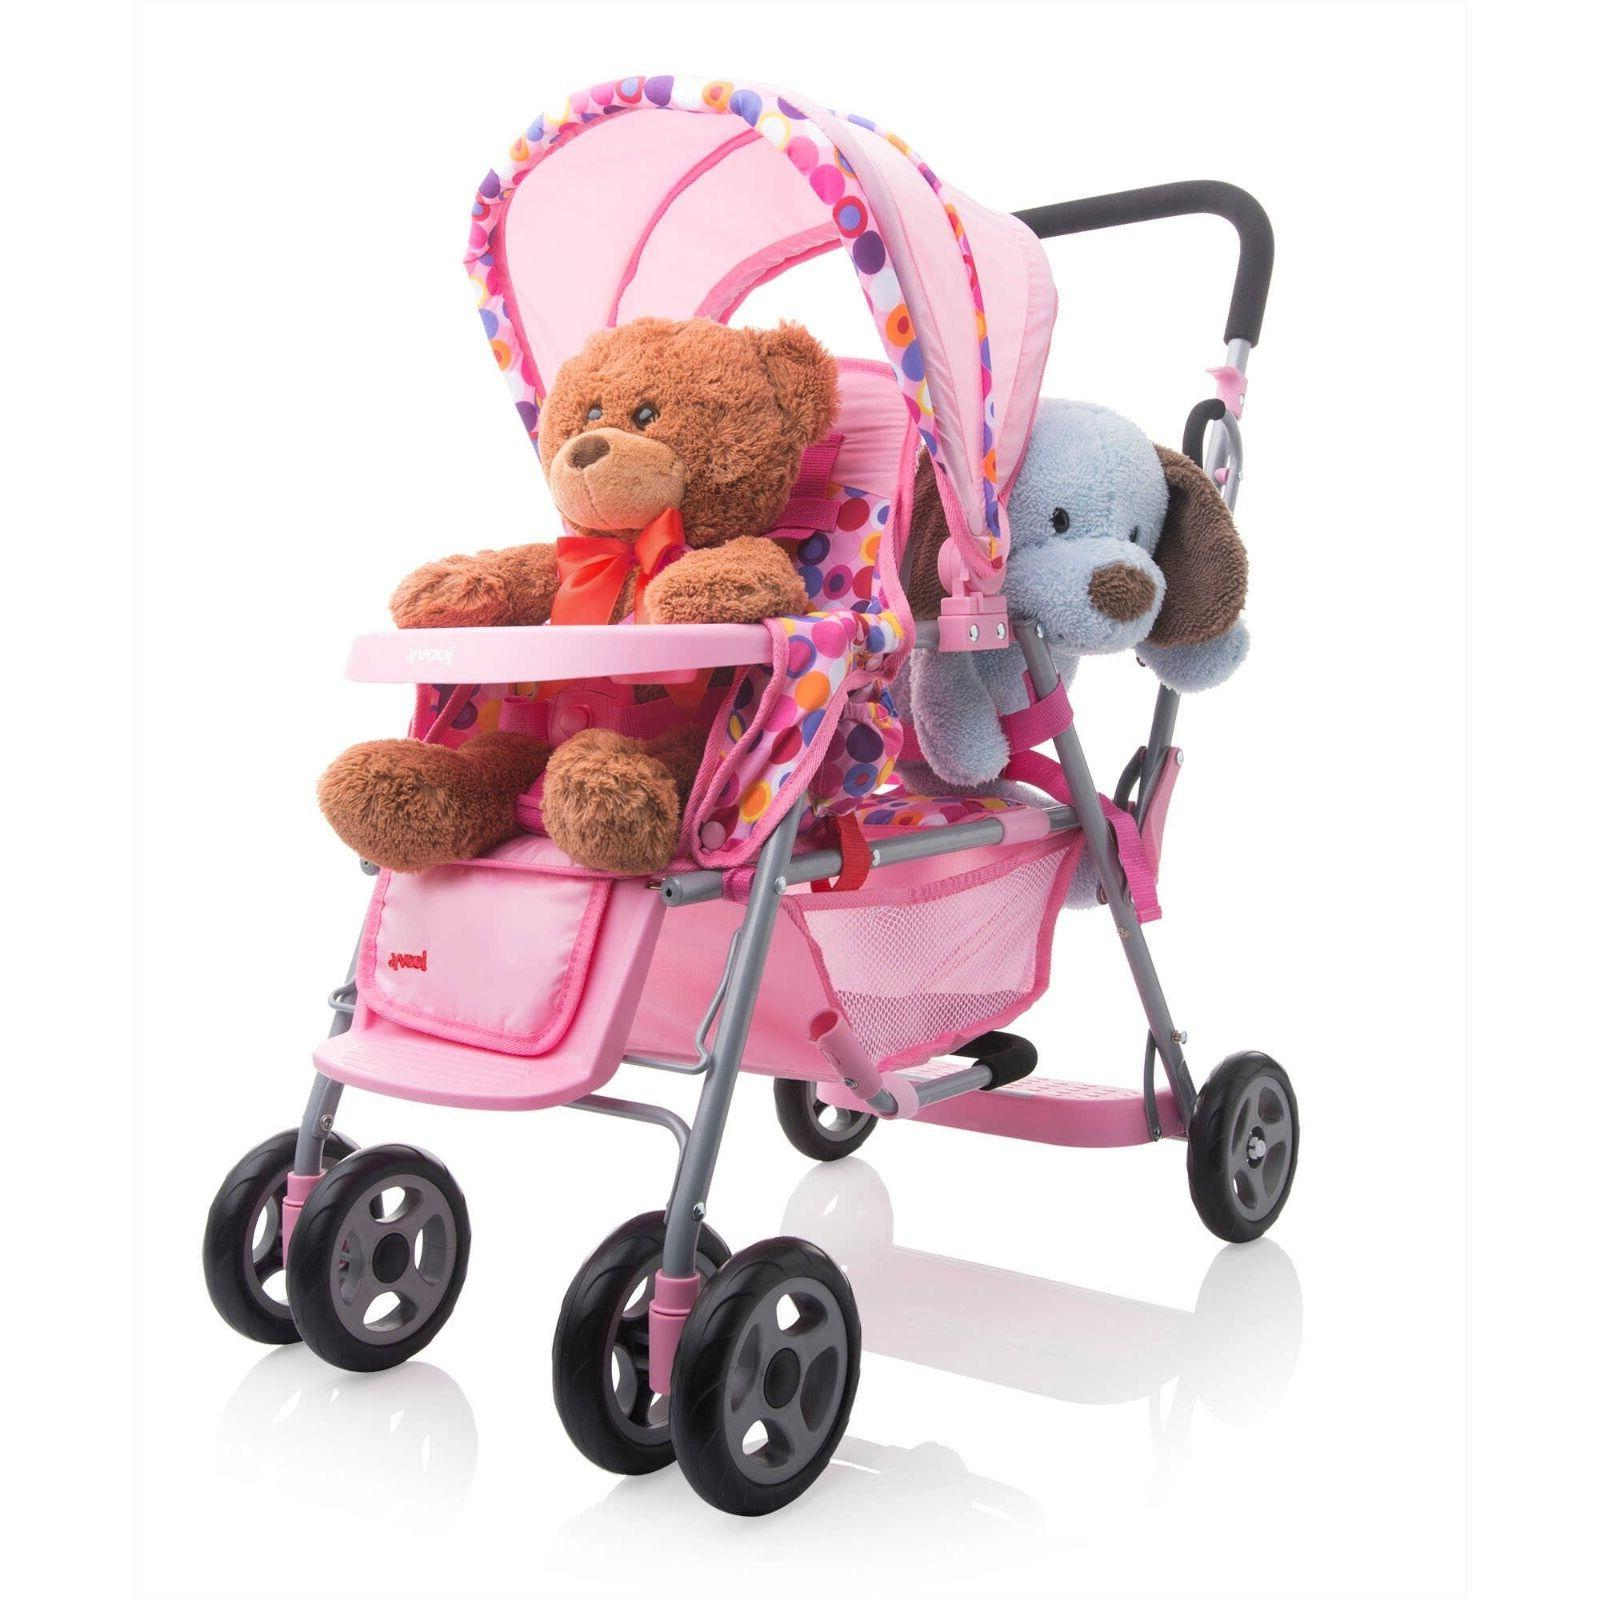 Joovy Doll Stroller Kid Pretend Accessory